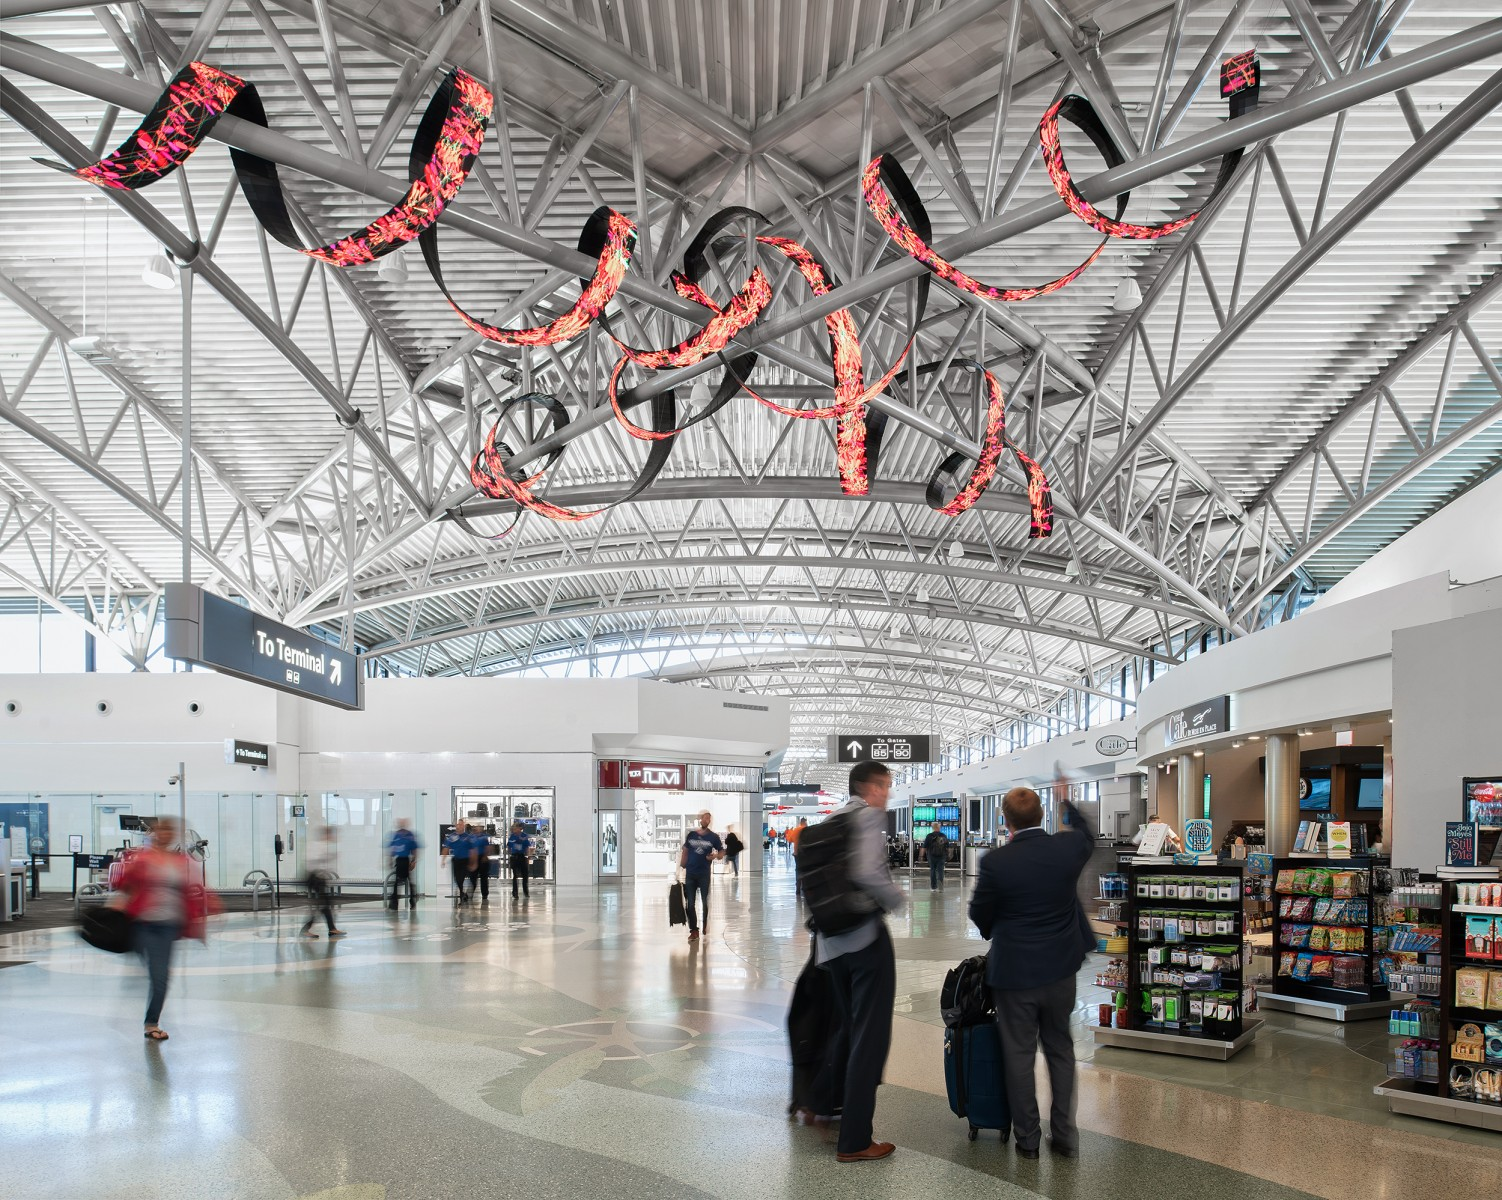 More Passengers, More Facility Improvements, More Revenue